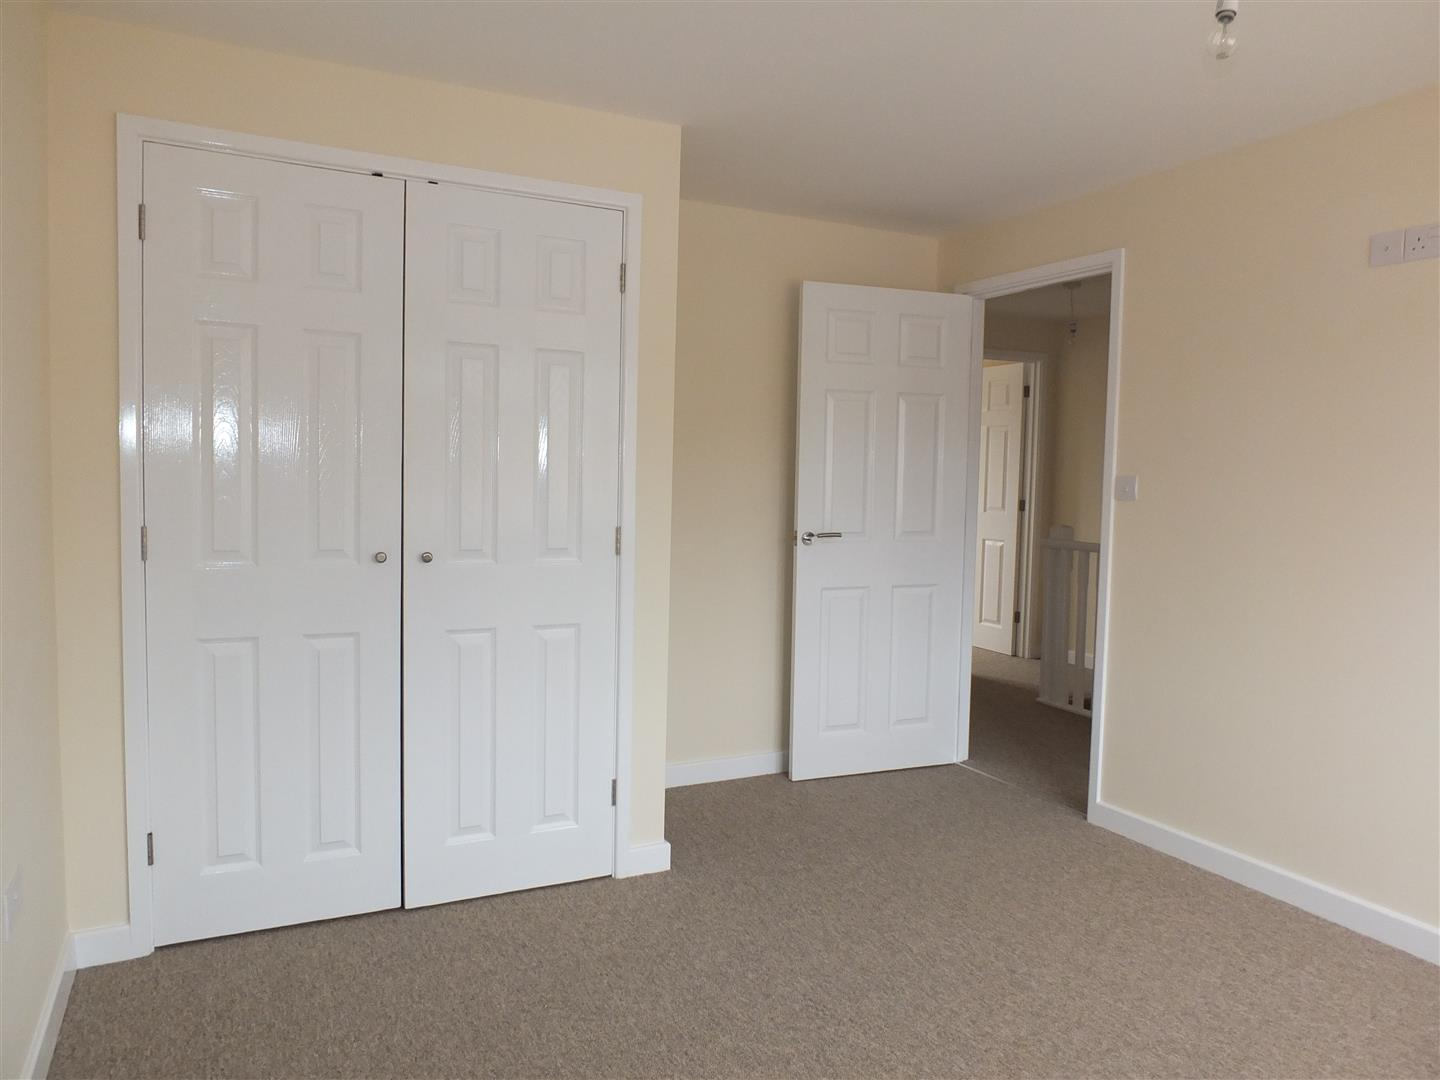 3 bed house to rent in Little London, Long Sutton 2